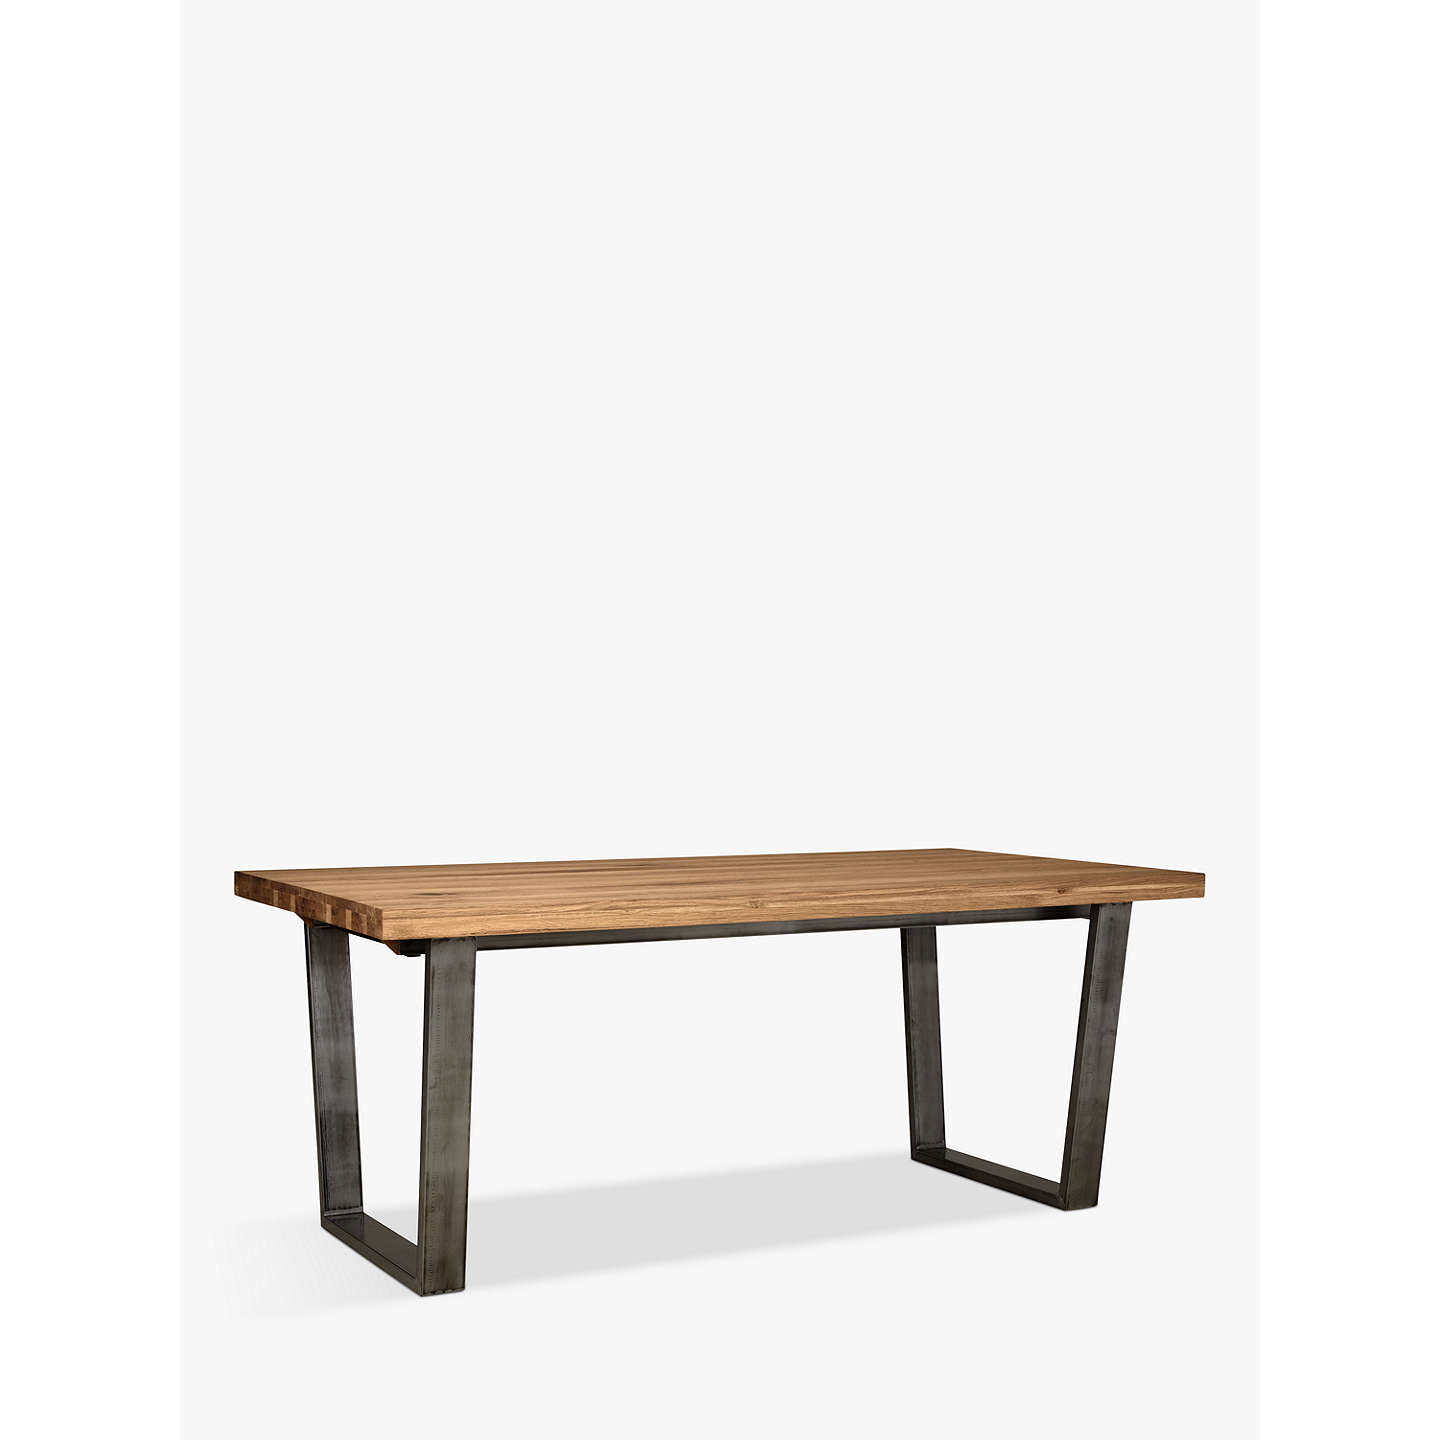 John Lewis Calia 8 Seater Dining Table at John Lewis